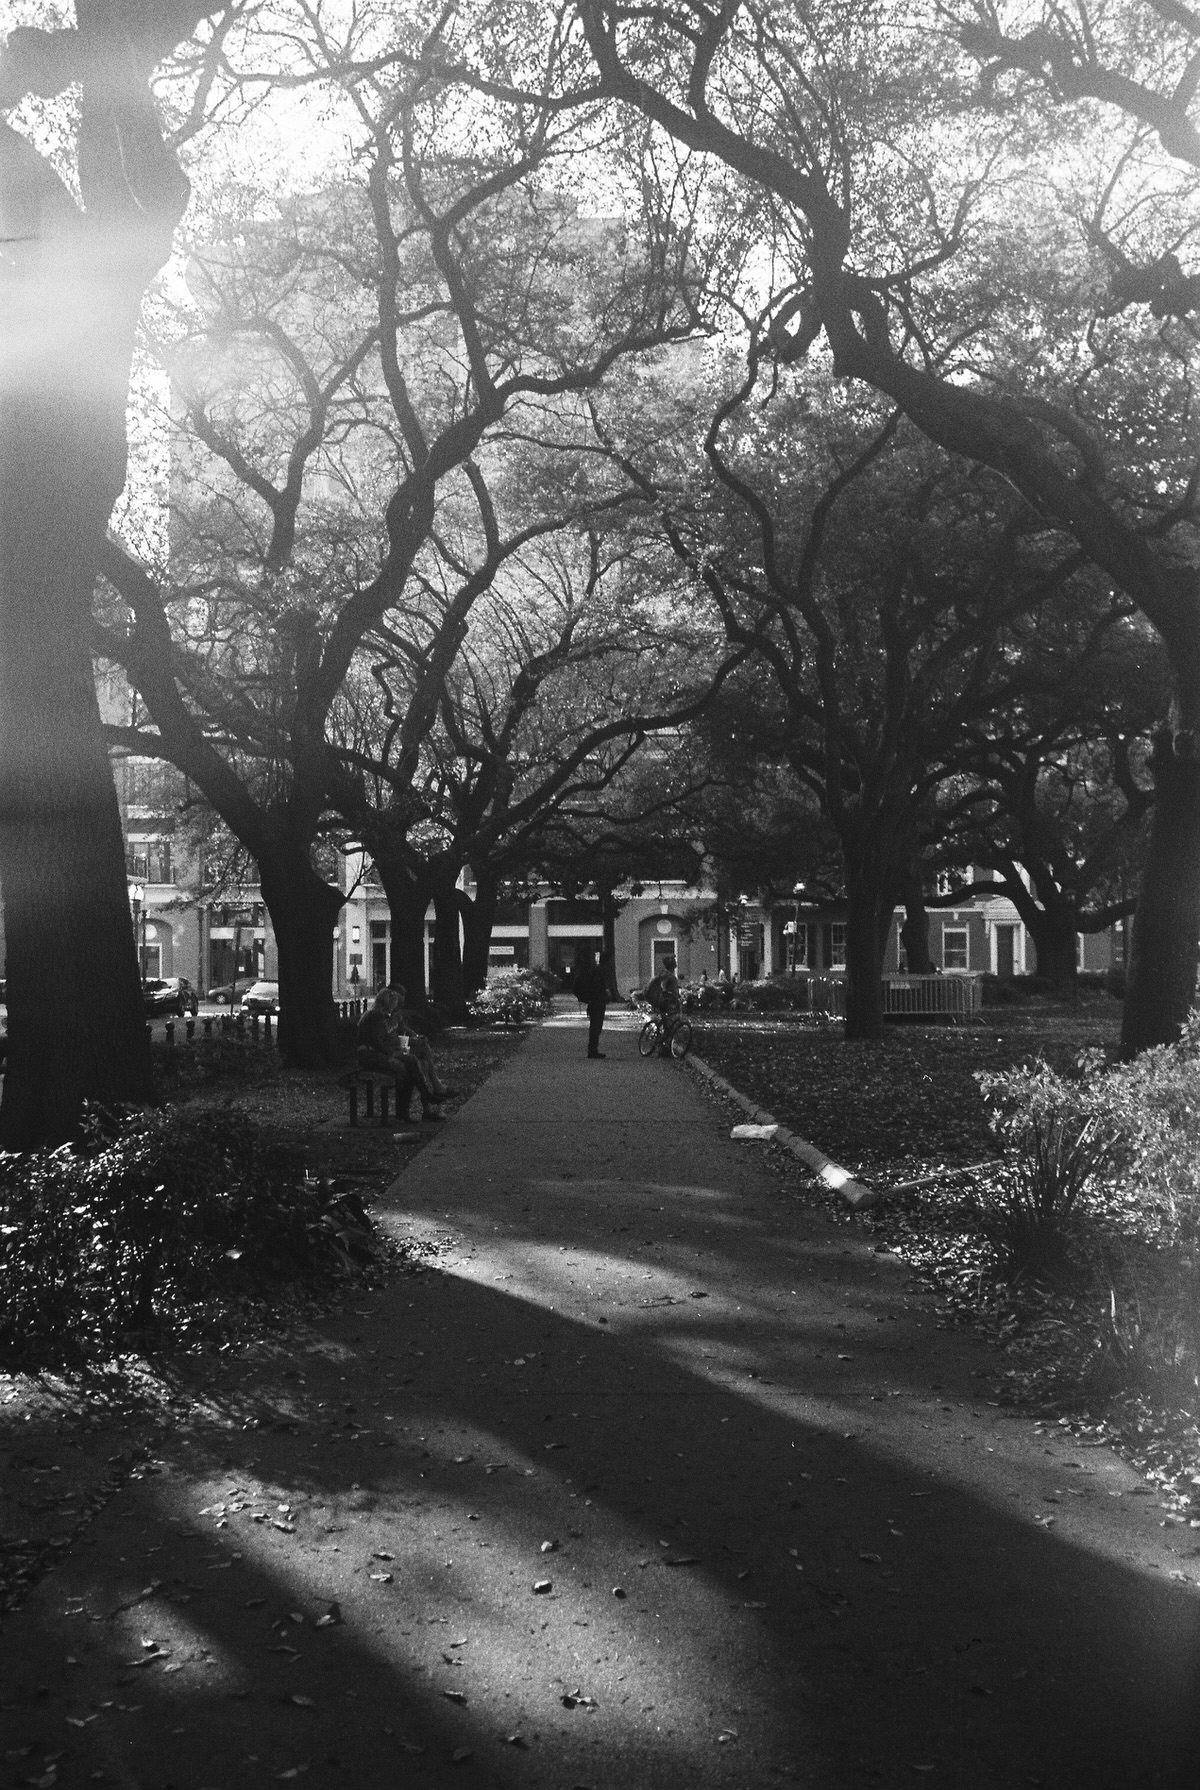 New-Orleans-Louisiana-black-and-white-fine-art-photography-by-Studio-L-photographer-Laura-Schneider-_017005